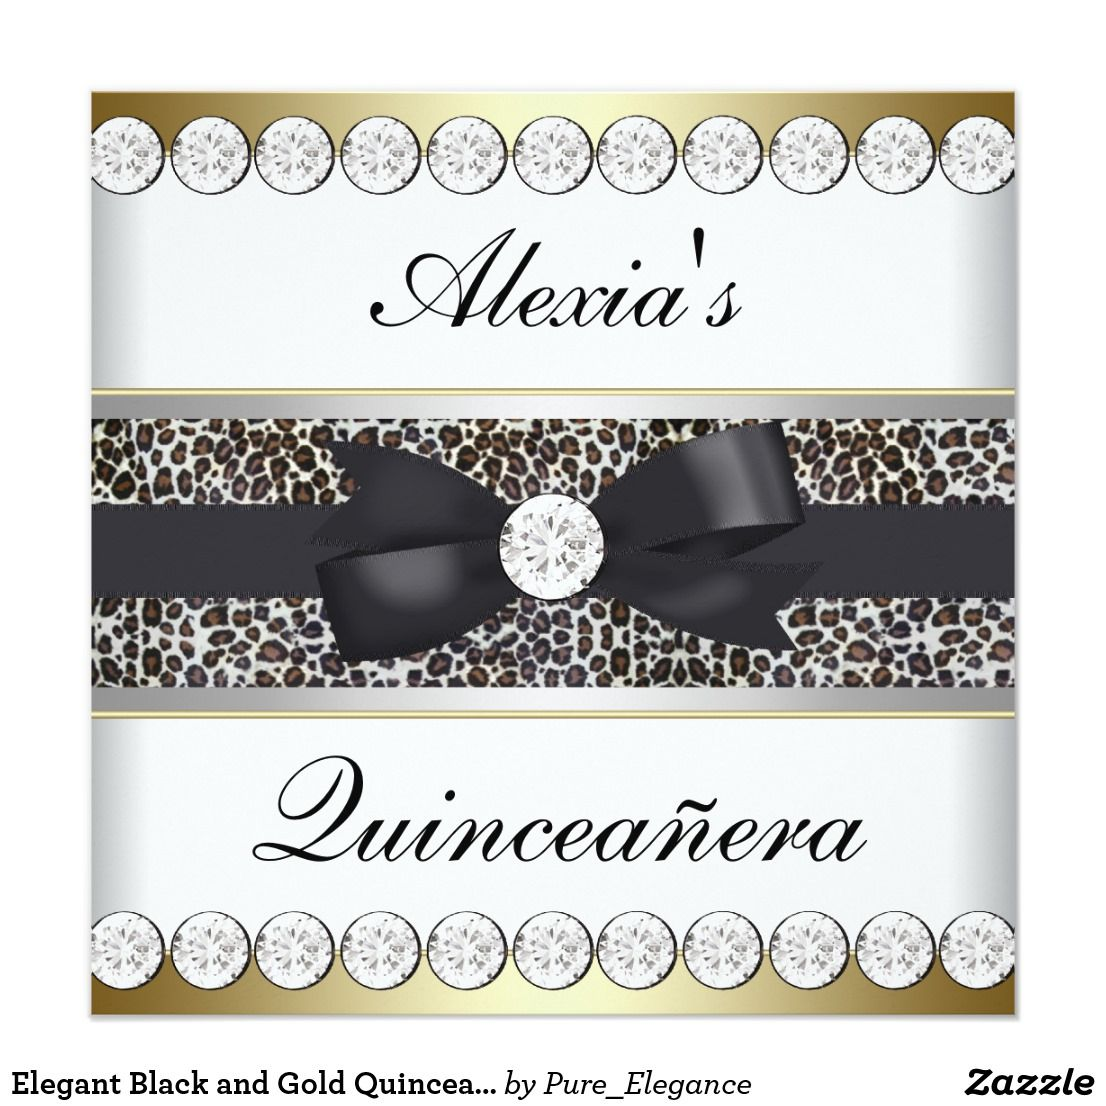 Elegant Black and Gold Quinceanera Card | Quinceanera invitations ...